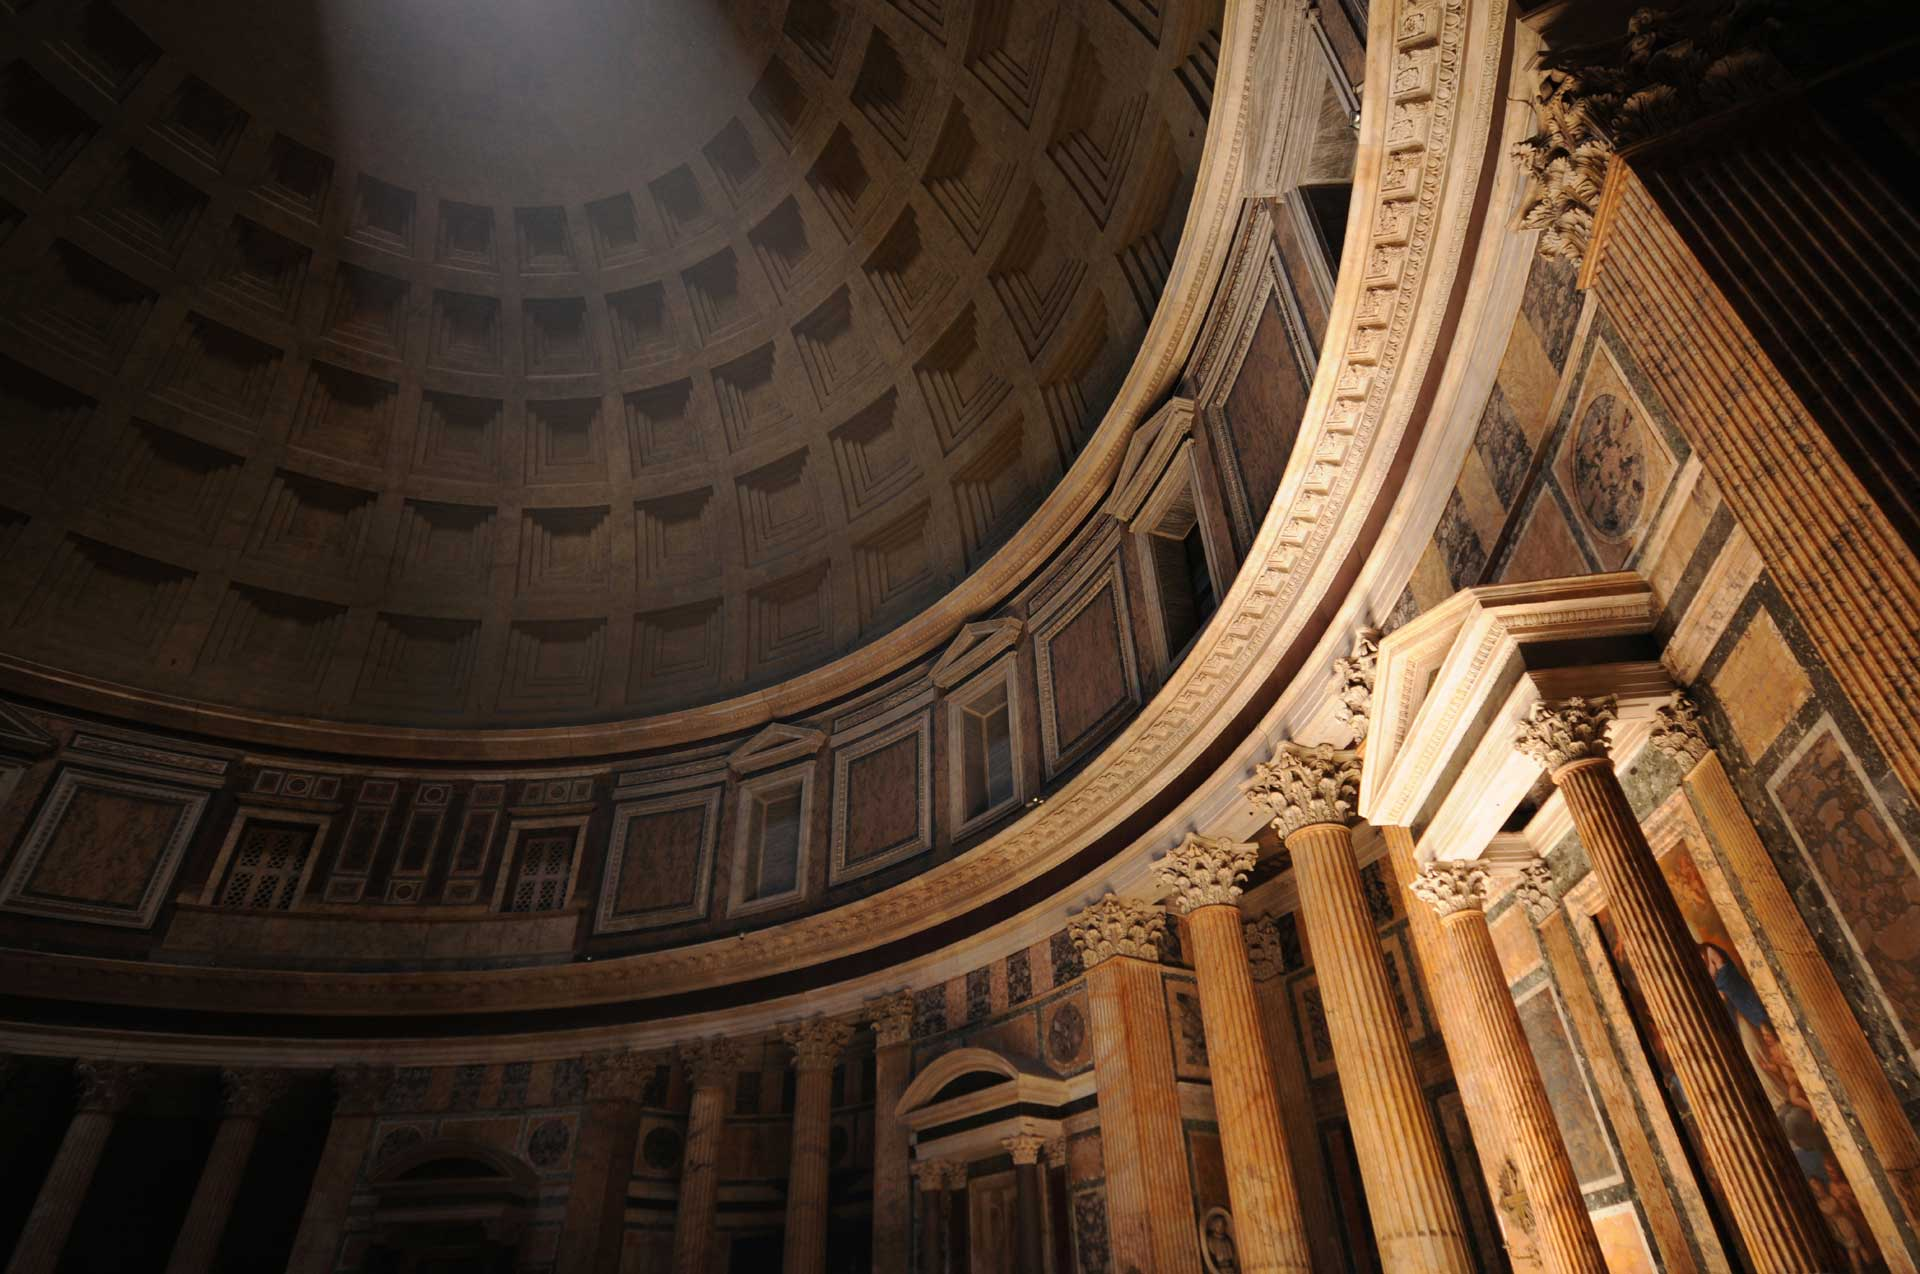 pantheon 1920x1274 bg3